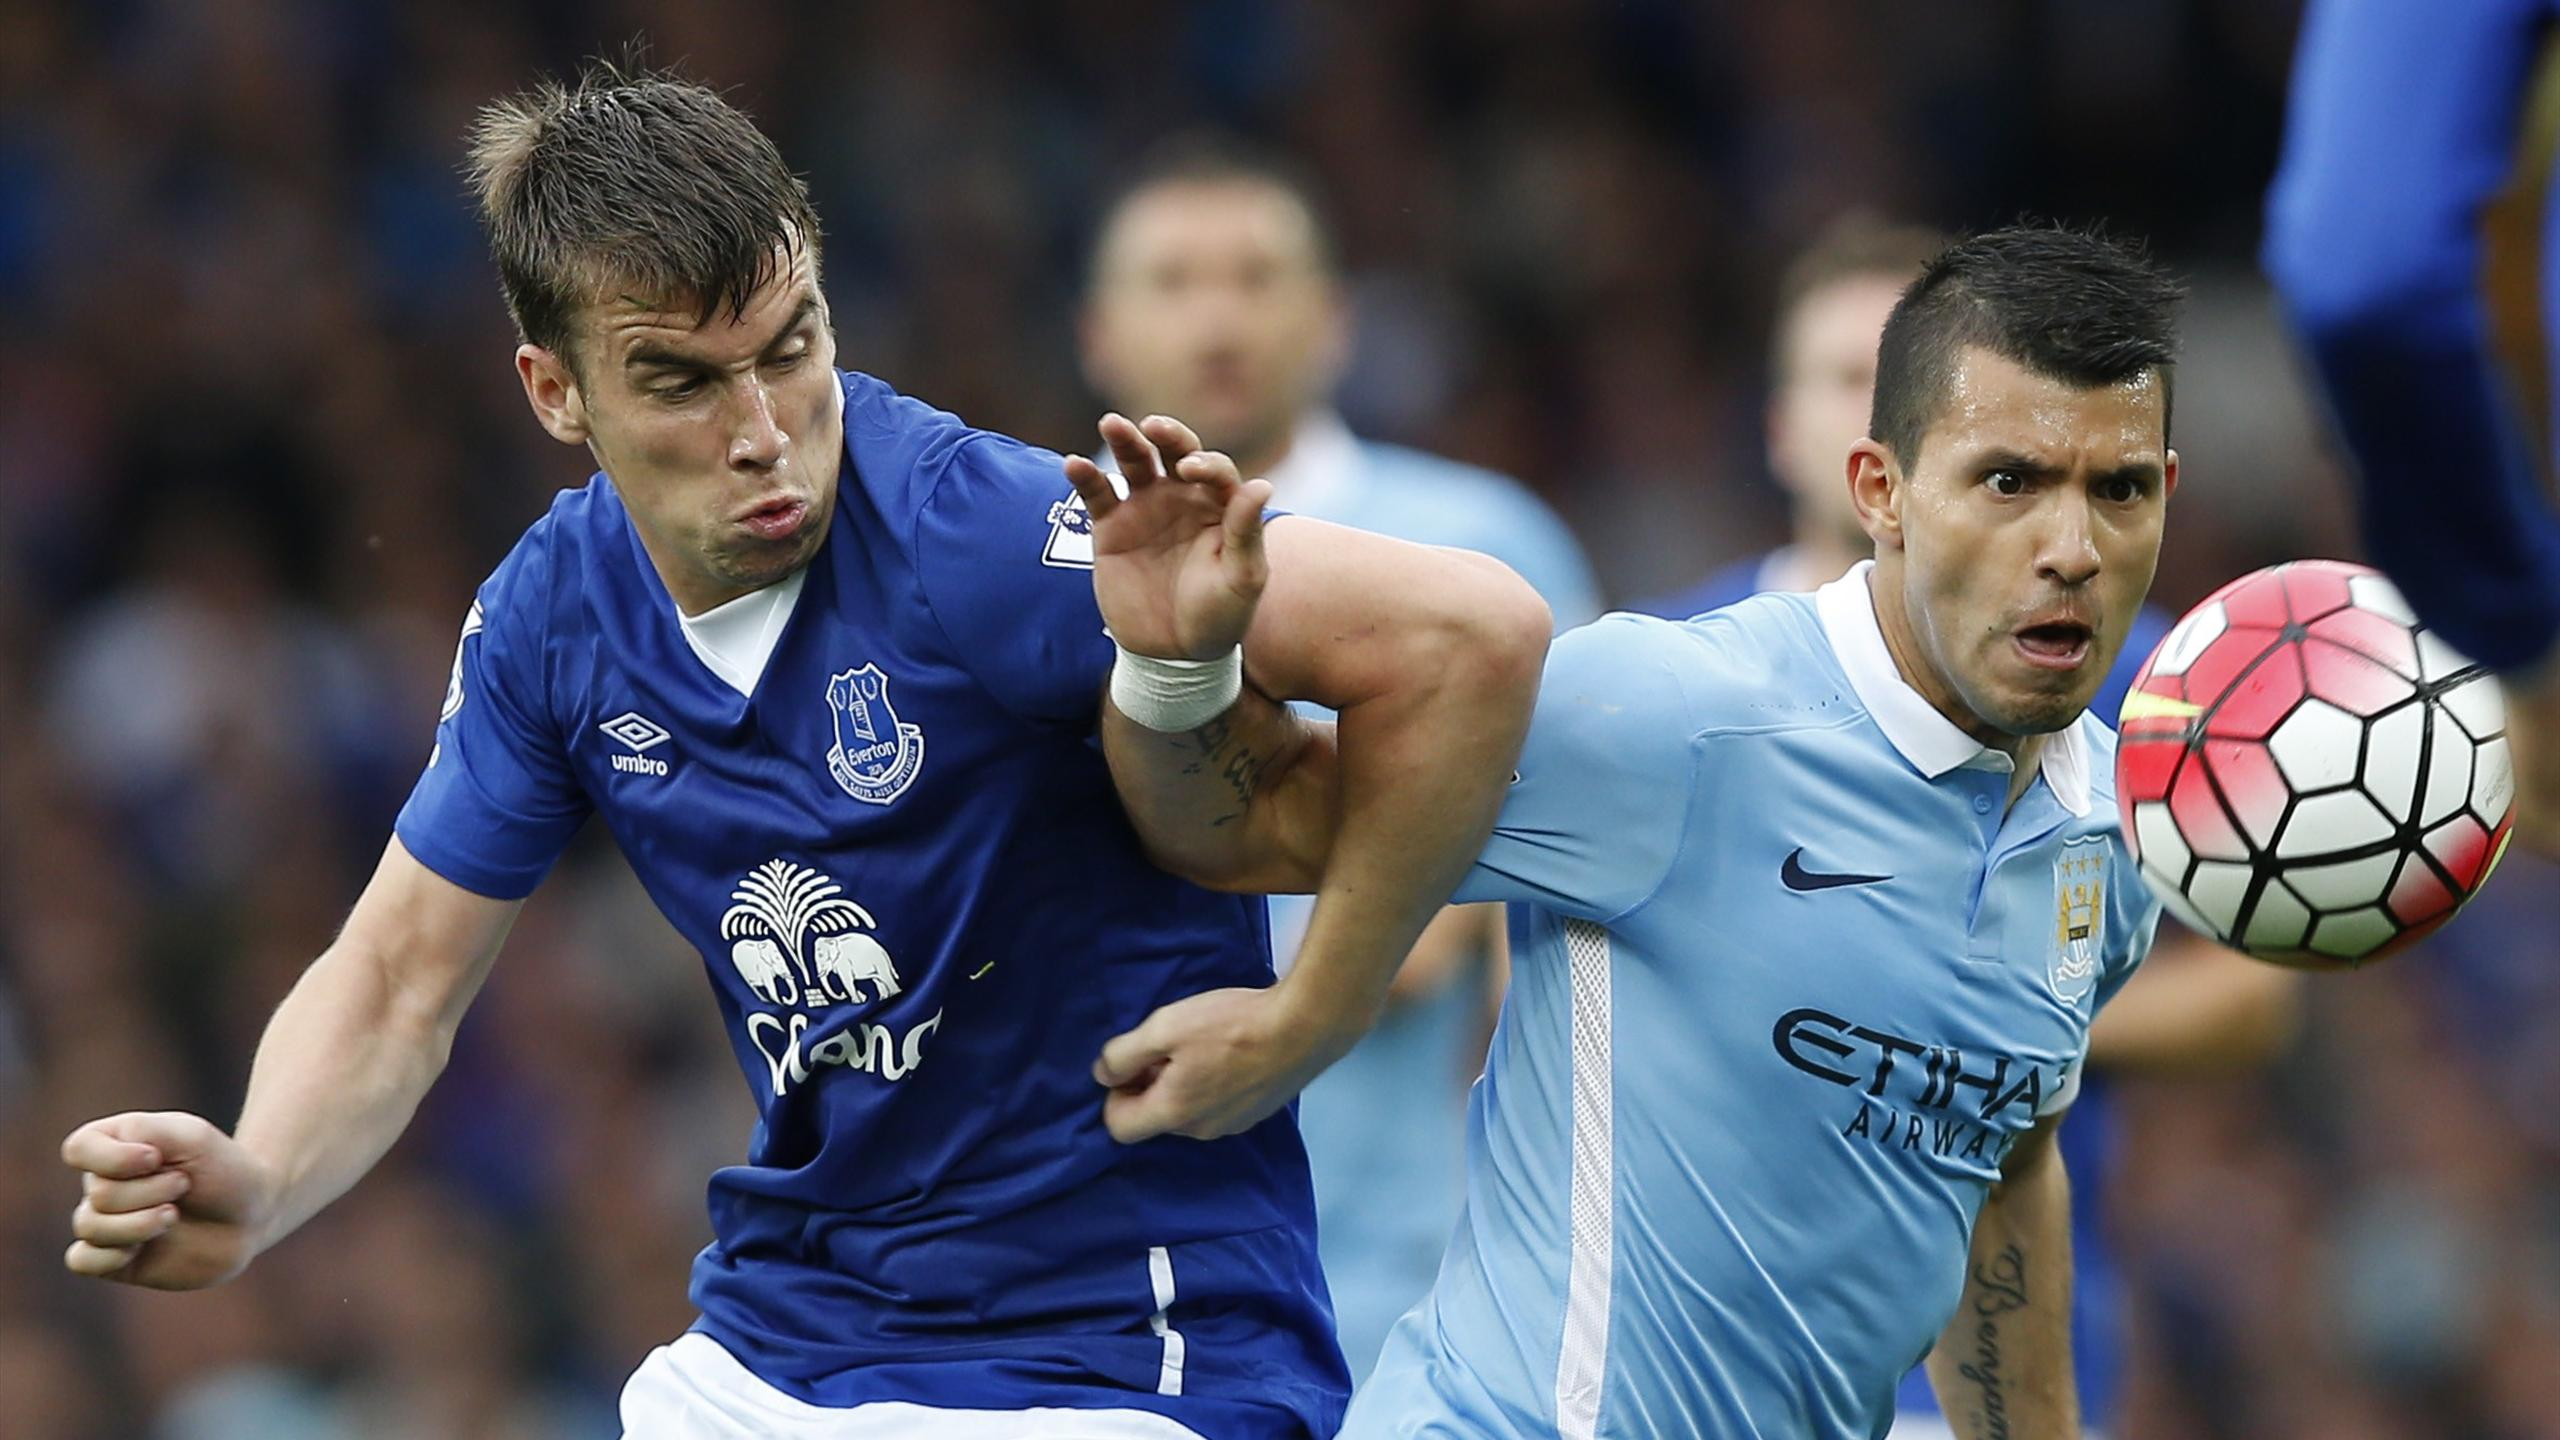 Manchester City's Sergio Aguero in action with Everton's Seamus Coleman